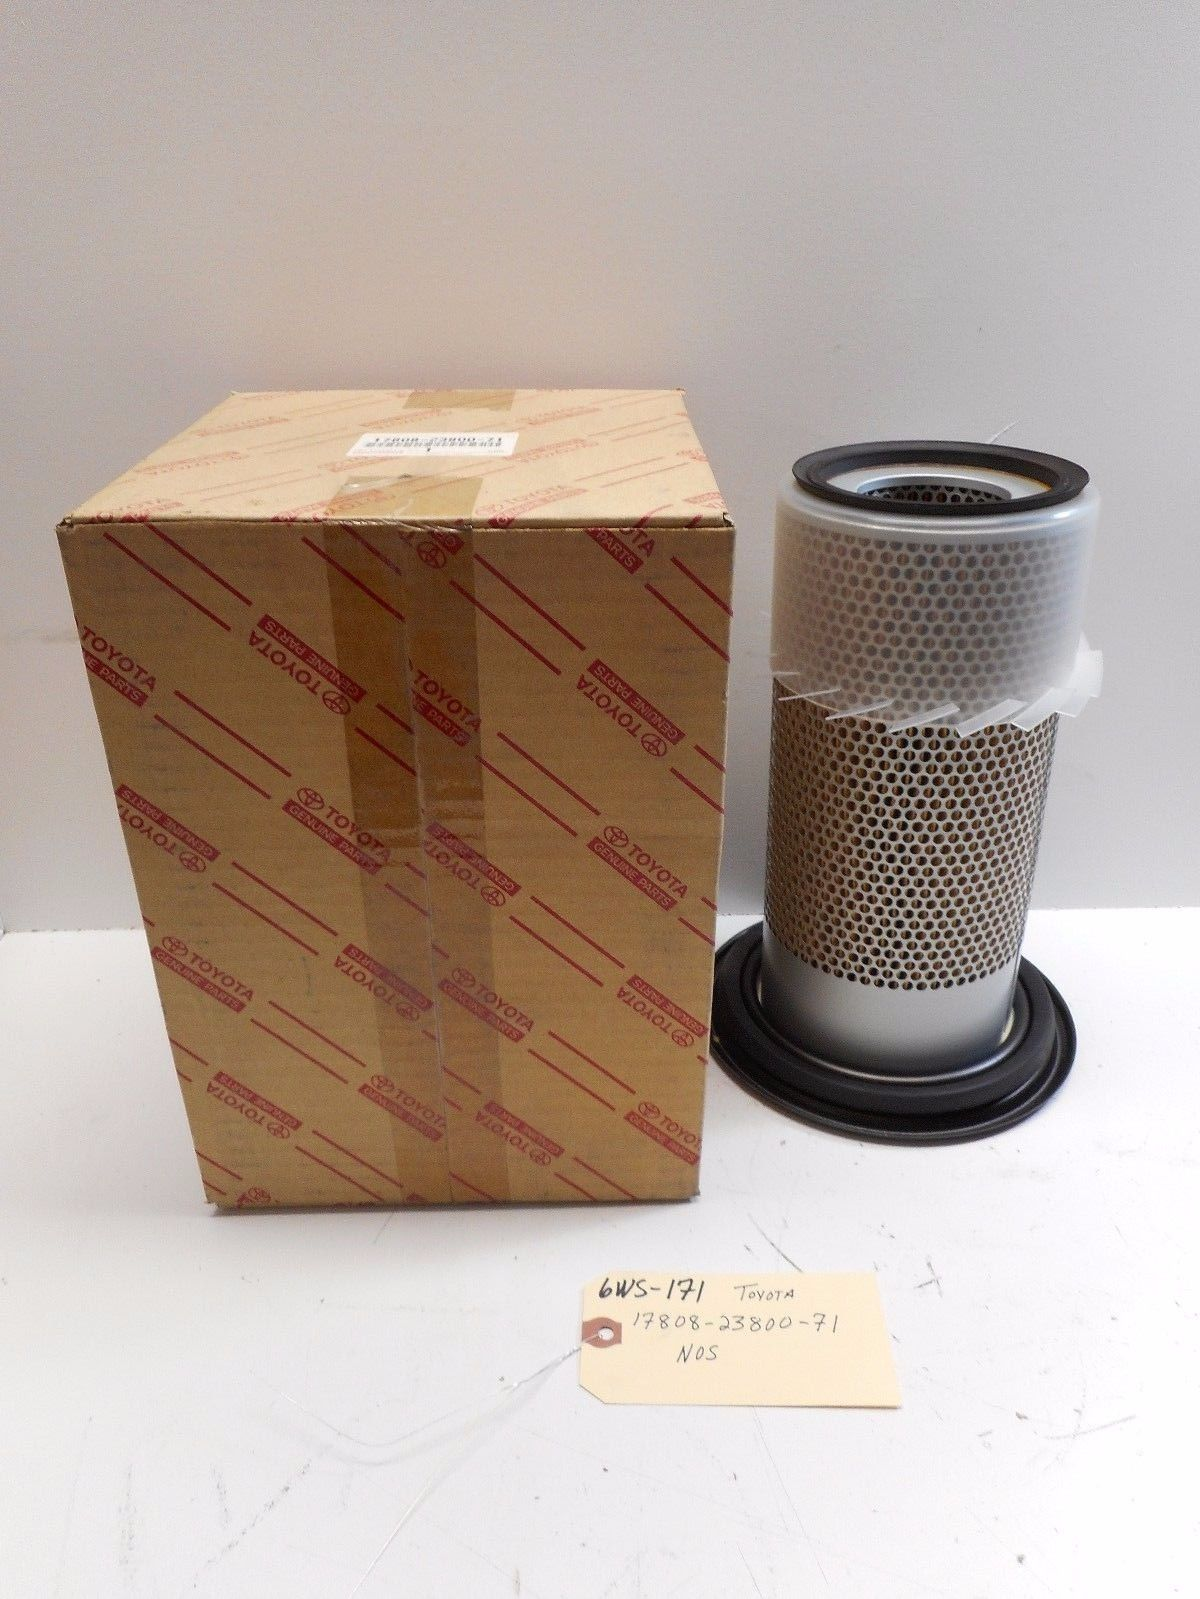 TOYOTA AIR FILTER 17808-23800-71 *FREE SHIPPING*